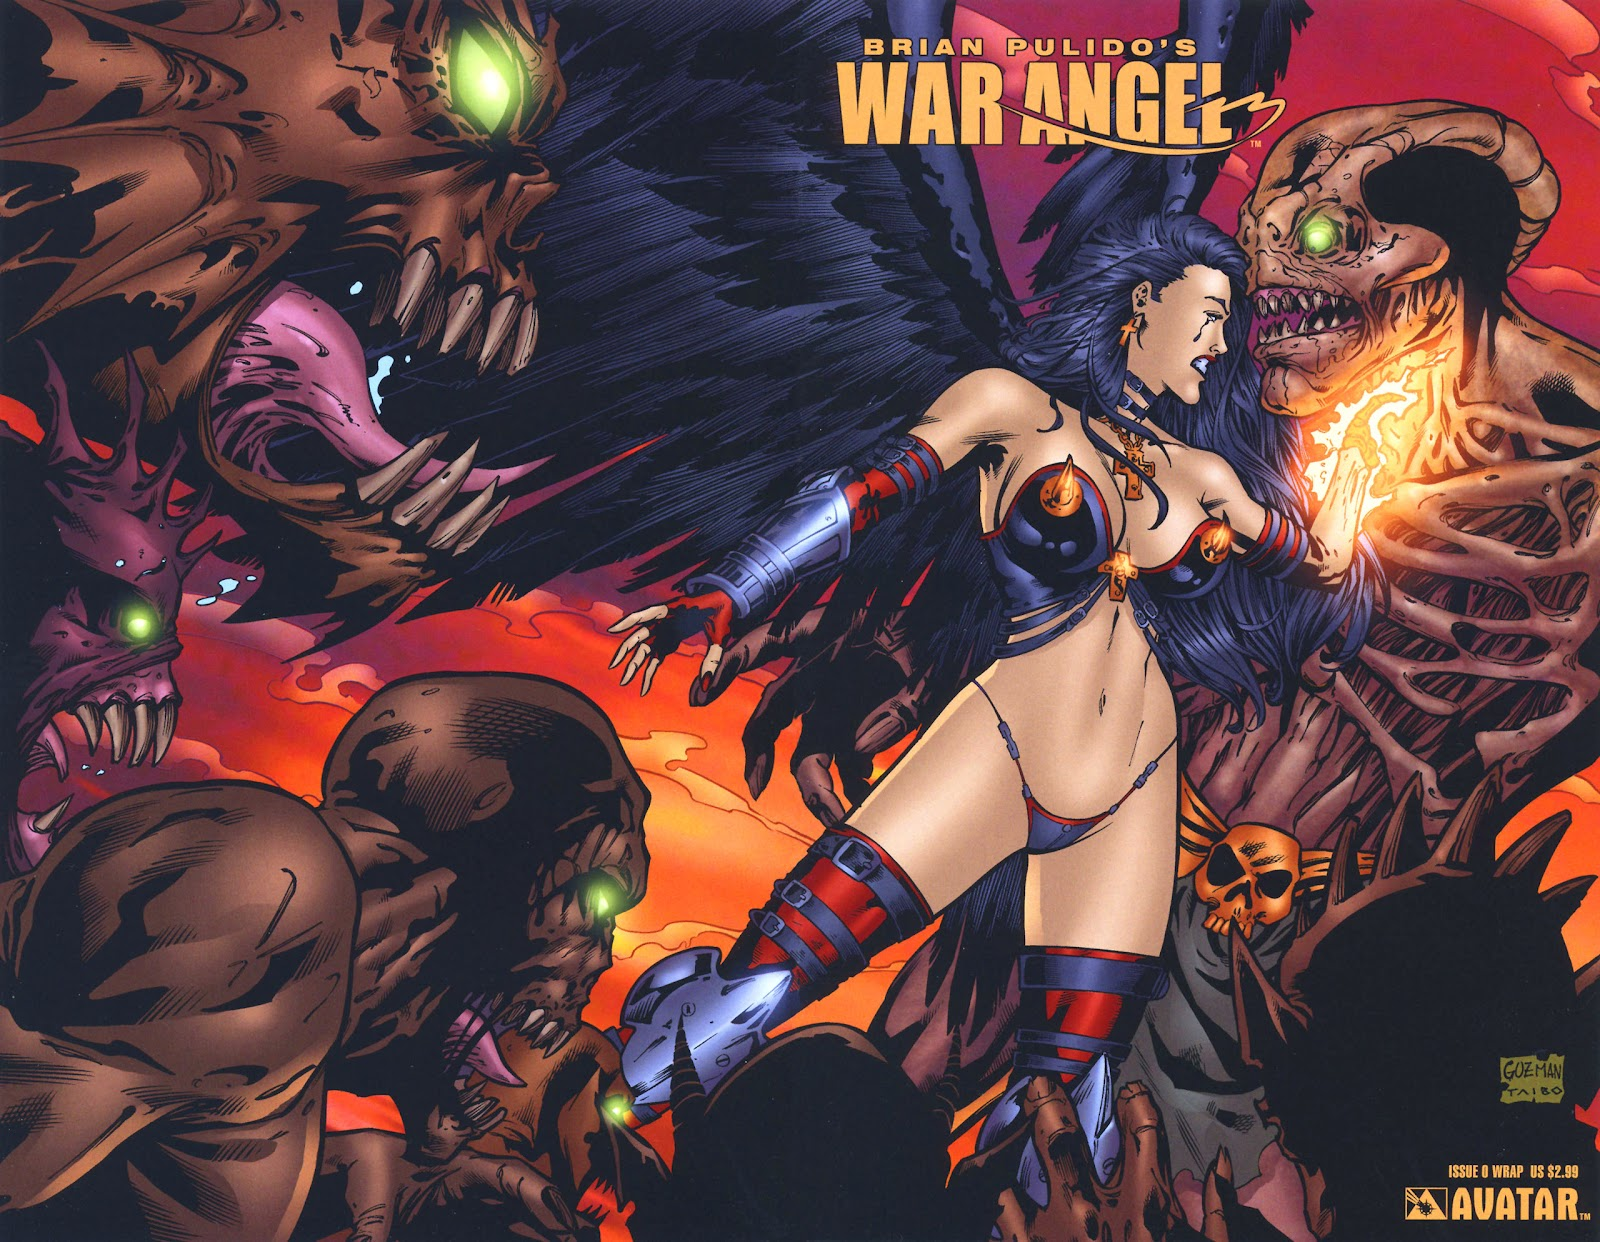 Read online Brian Pulido's War Angel comic -  Issue #0 - 10